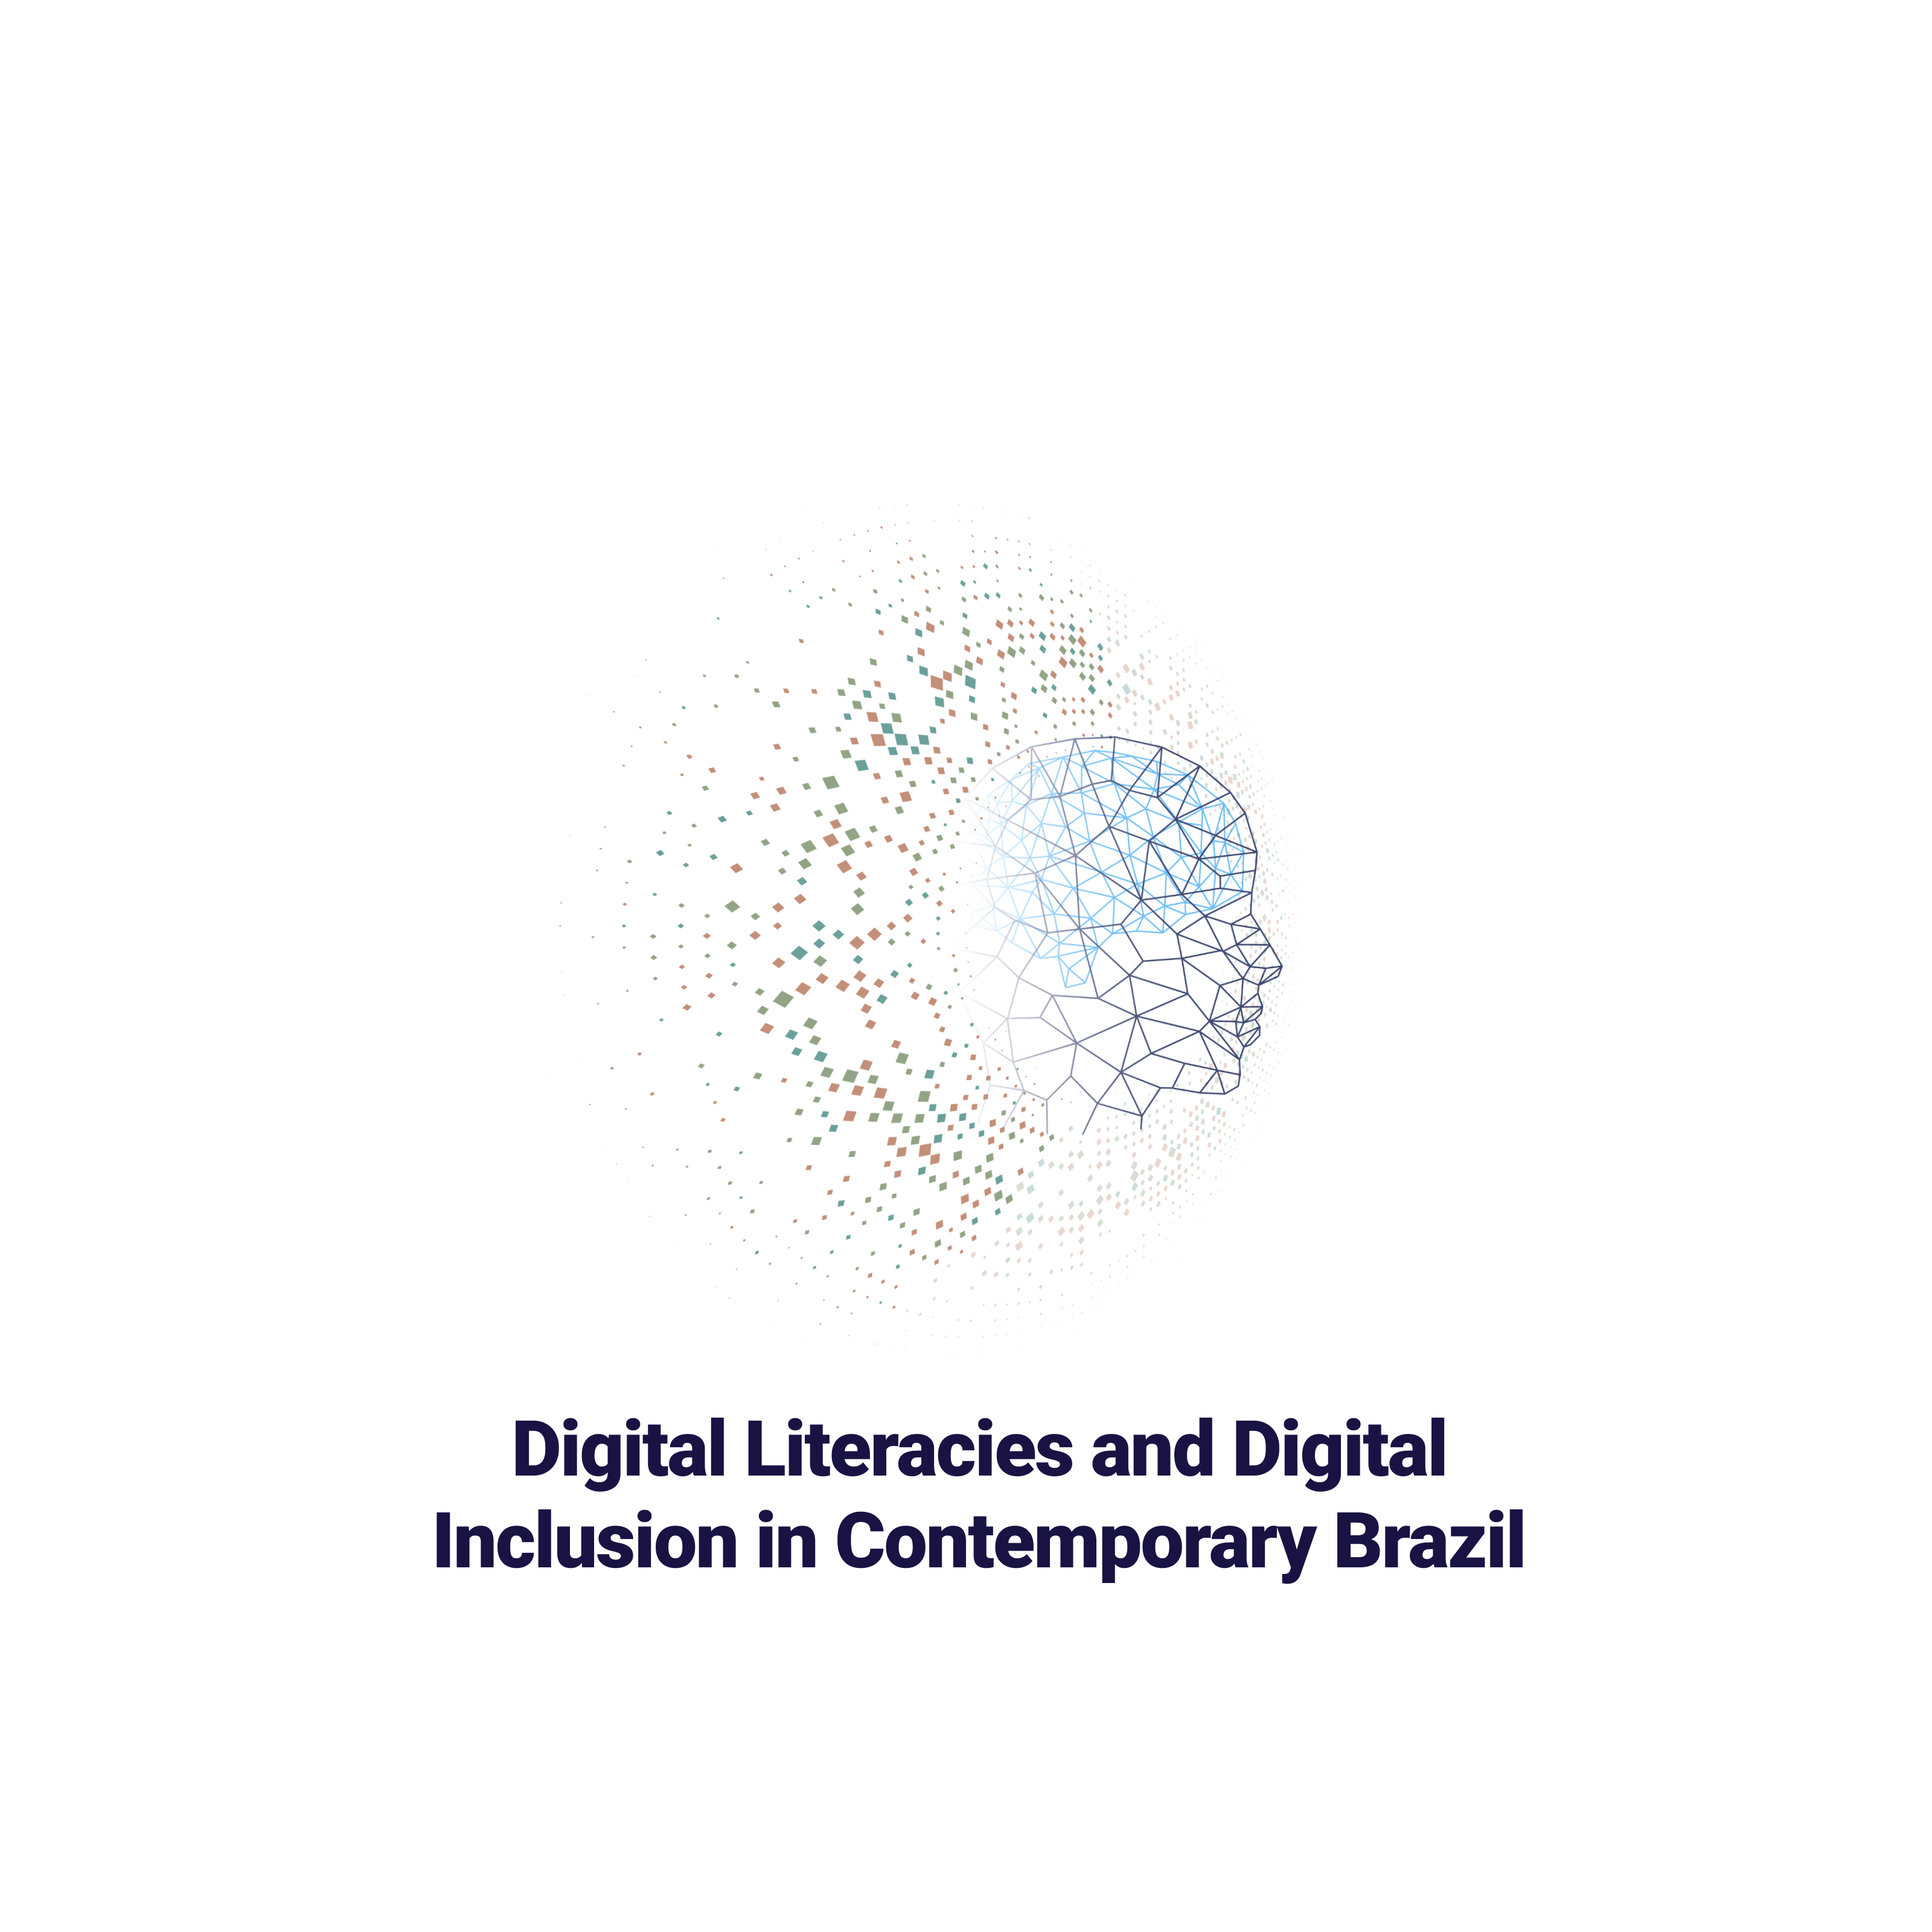 Workshop: Digital Literacies and Digital Inclusion in Contemporary Brazil